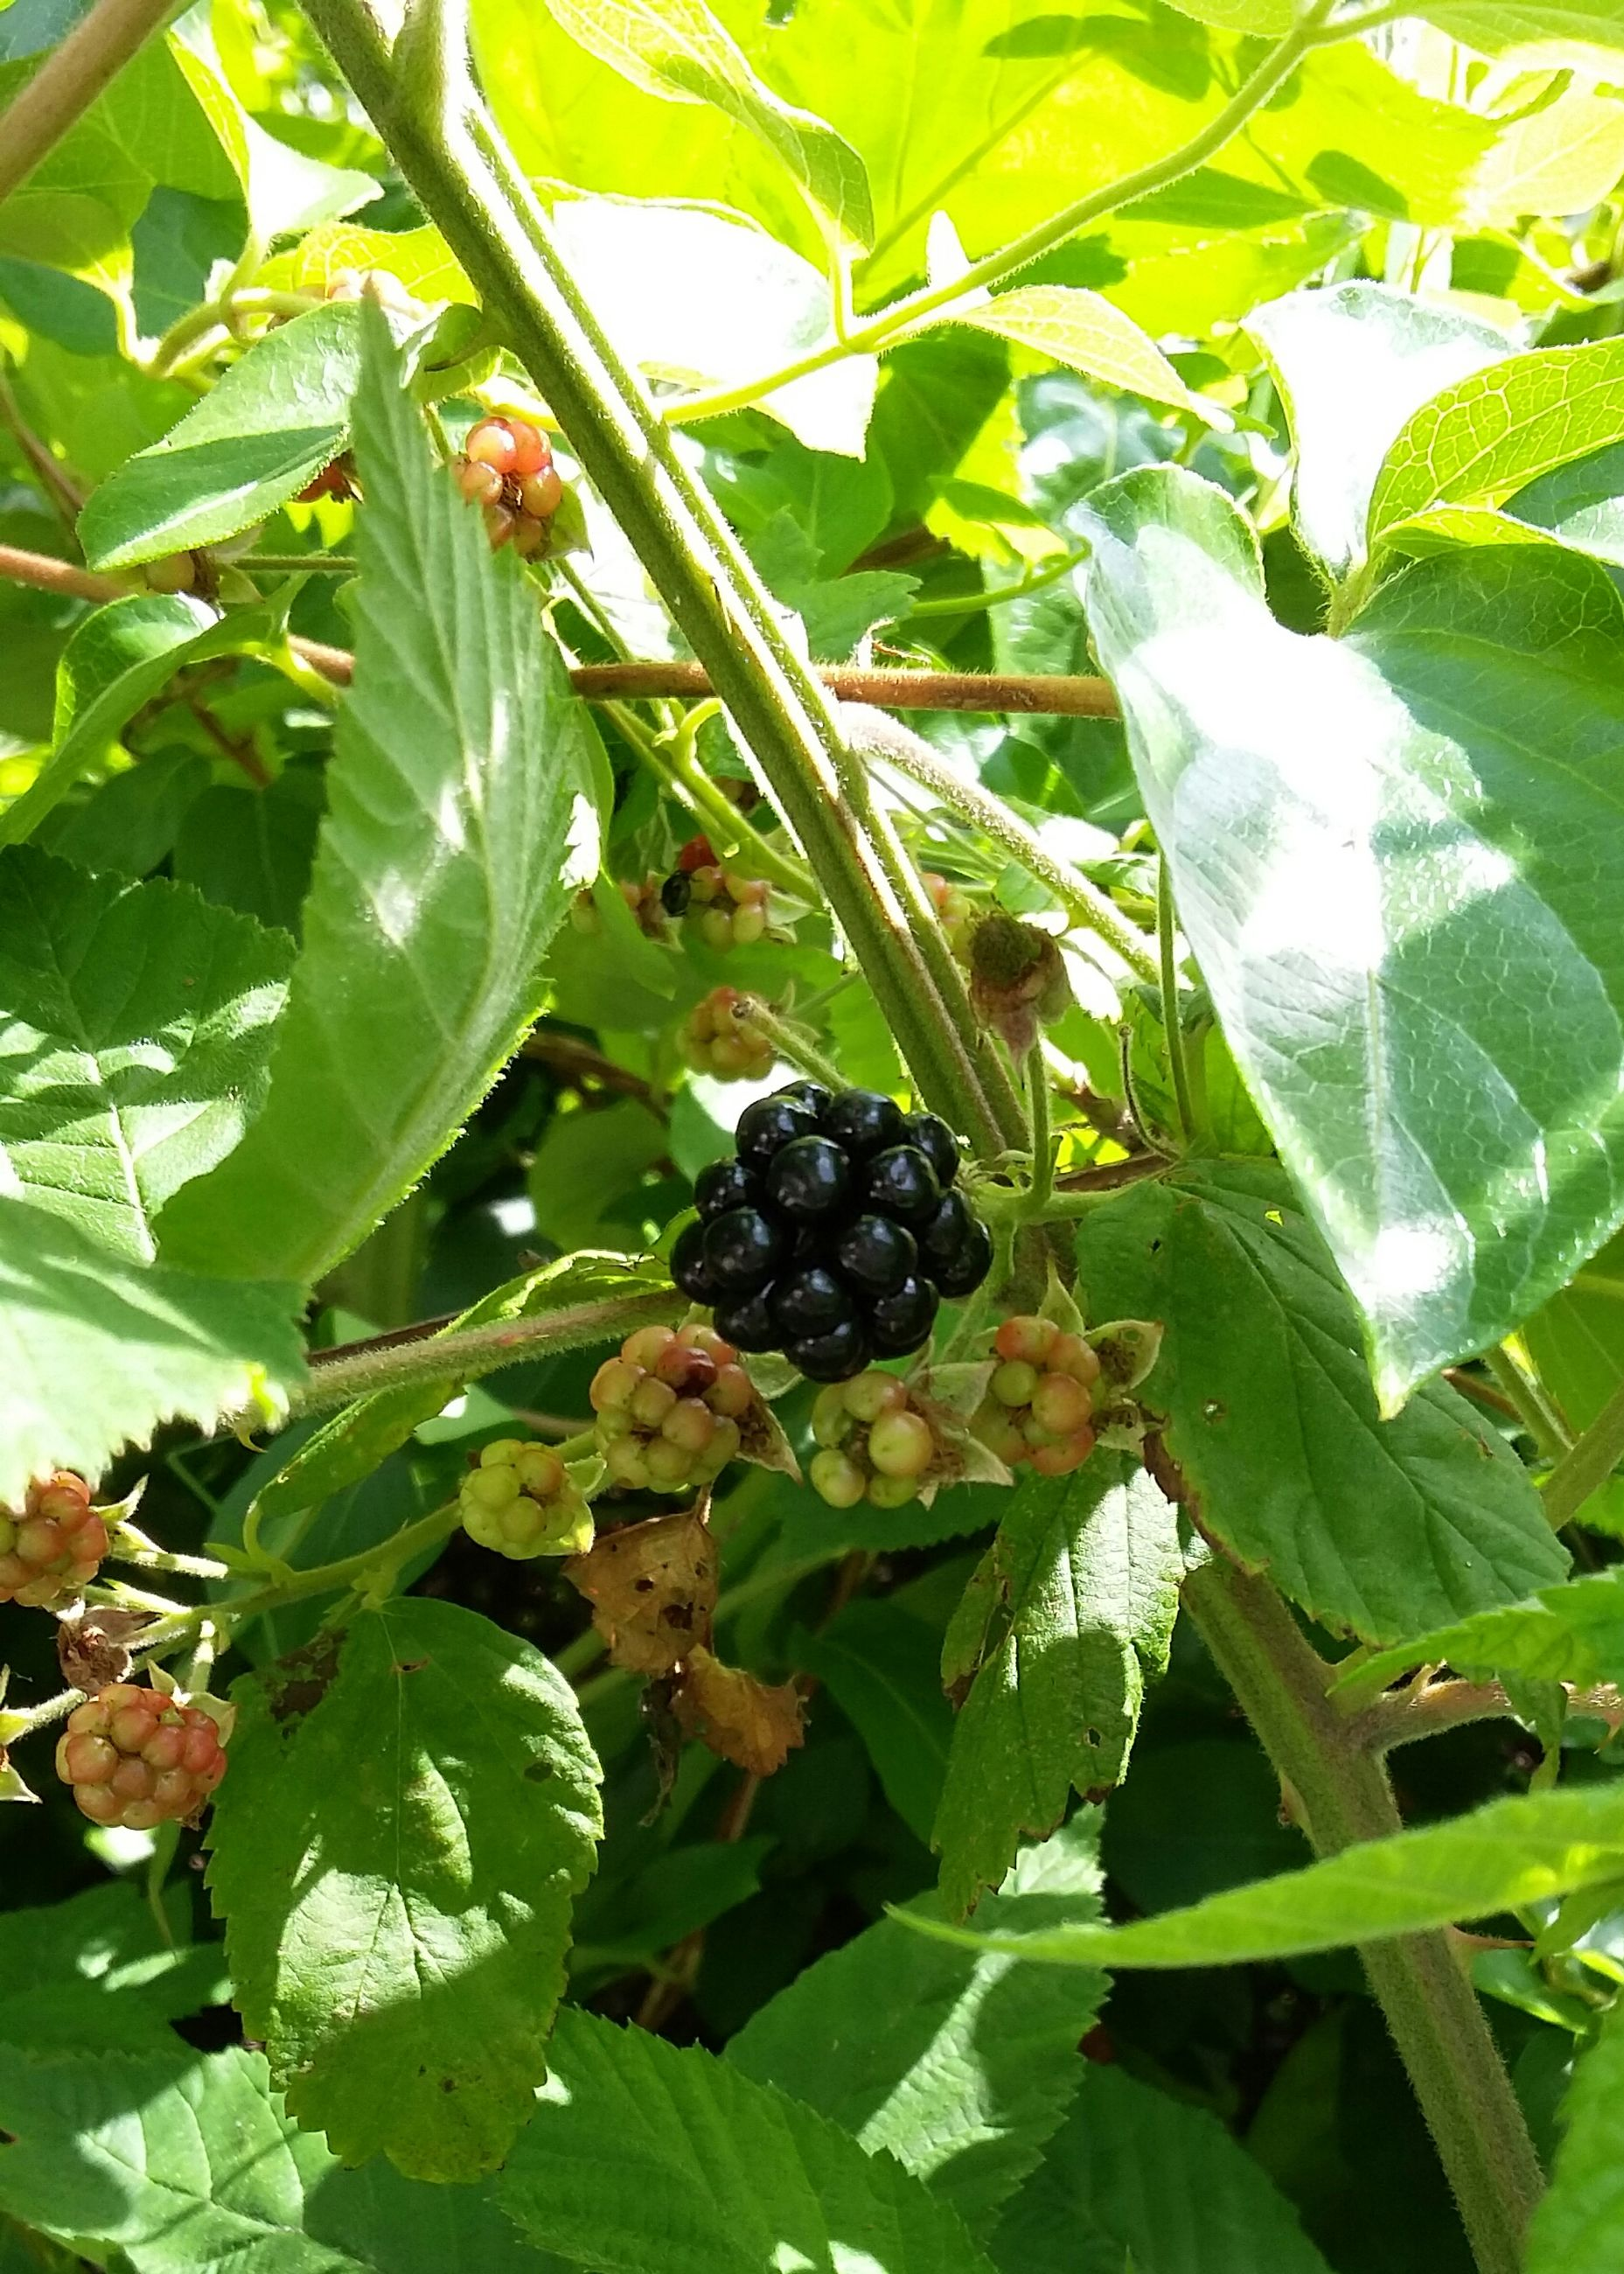 fruit, food, leaf, healthy eating, freshness, growth, berry fruit, ripe, green color, tree, plant, close-up, nature, agriculture, berry, grape, bunch, growing, day, outdoors, organic, no people, beauty in nature, black color, focus on foreground, selective focus, abundance, green